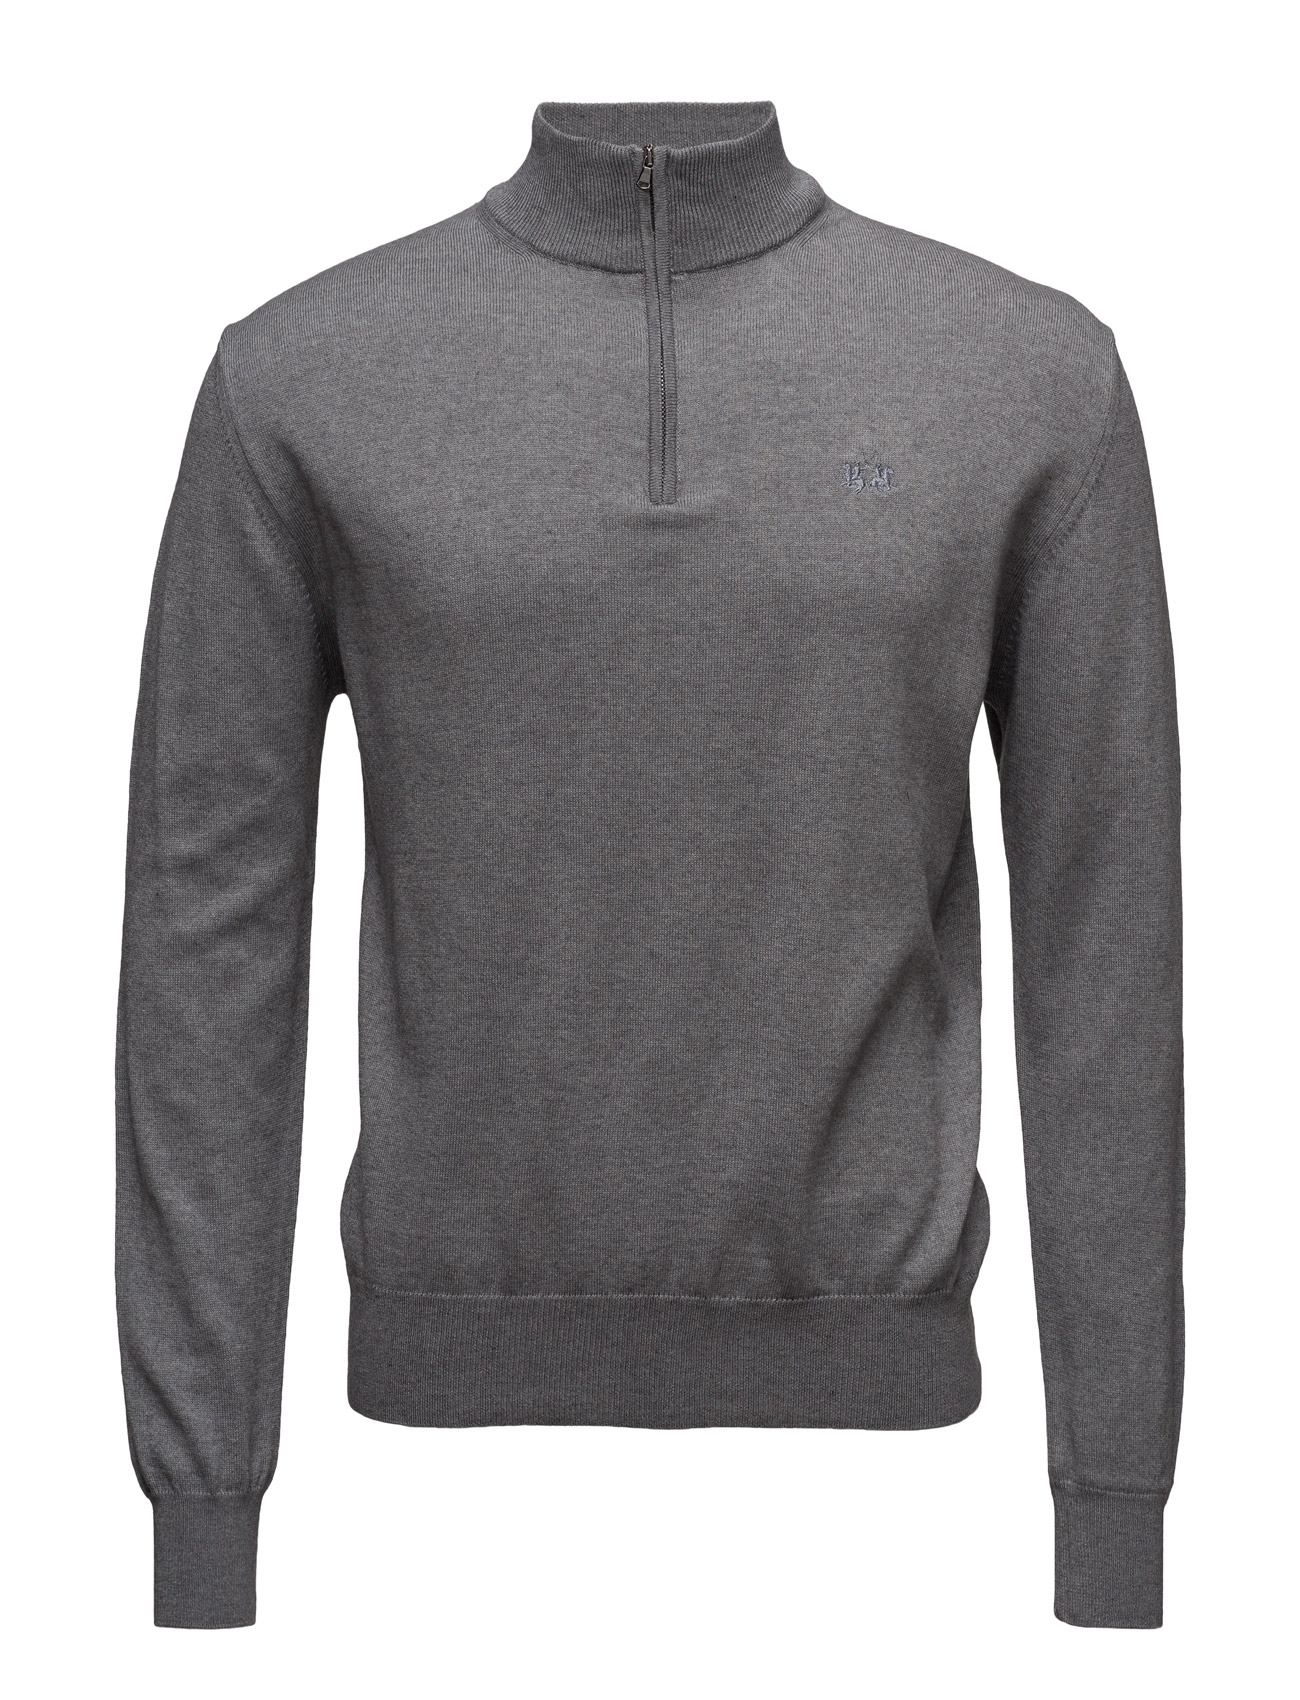 La Martina-Man Half Zip Sweat.  Wool/Co G La Martina Højhalsede til Herrer i